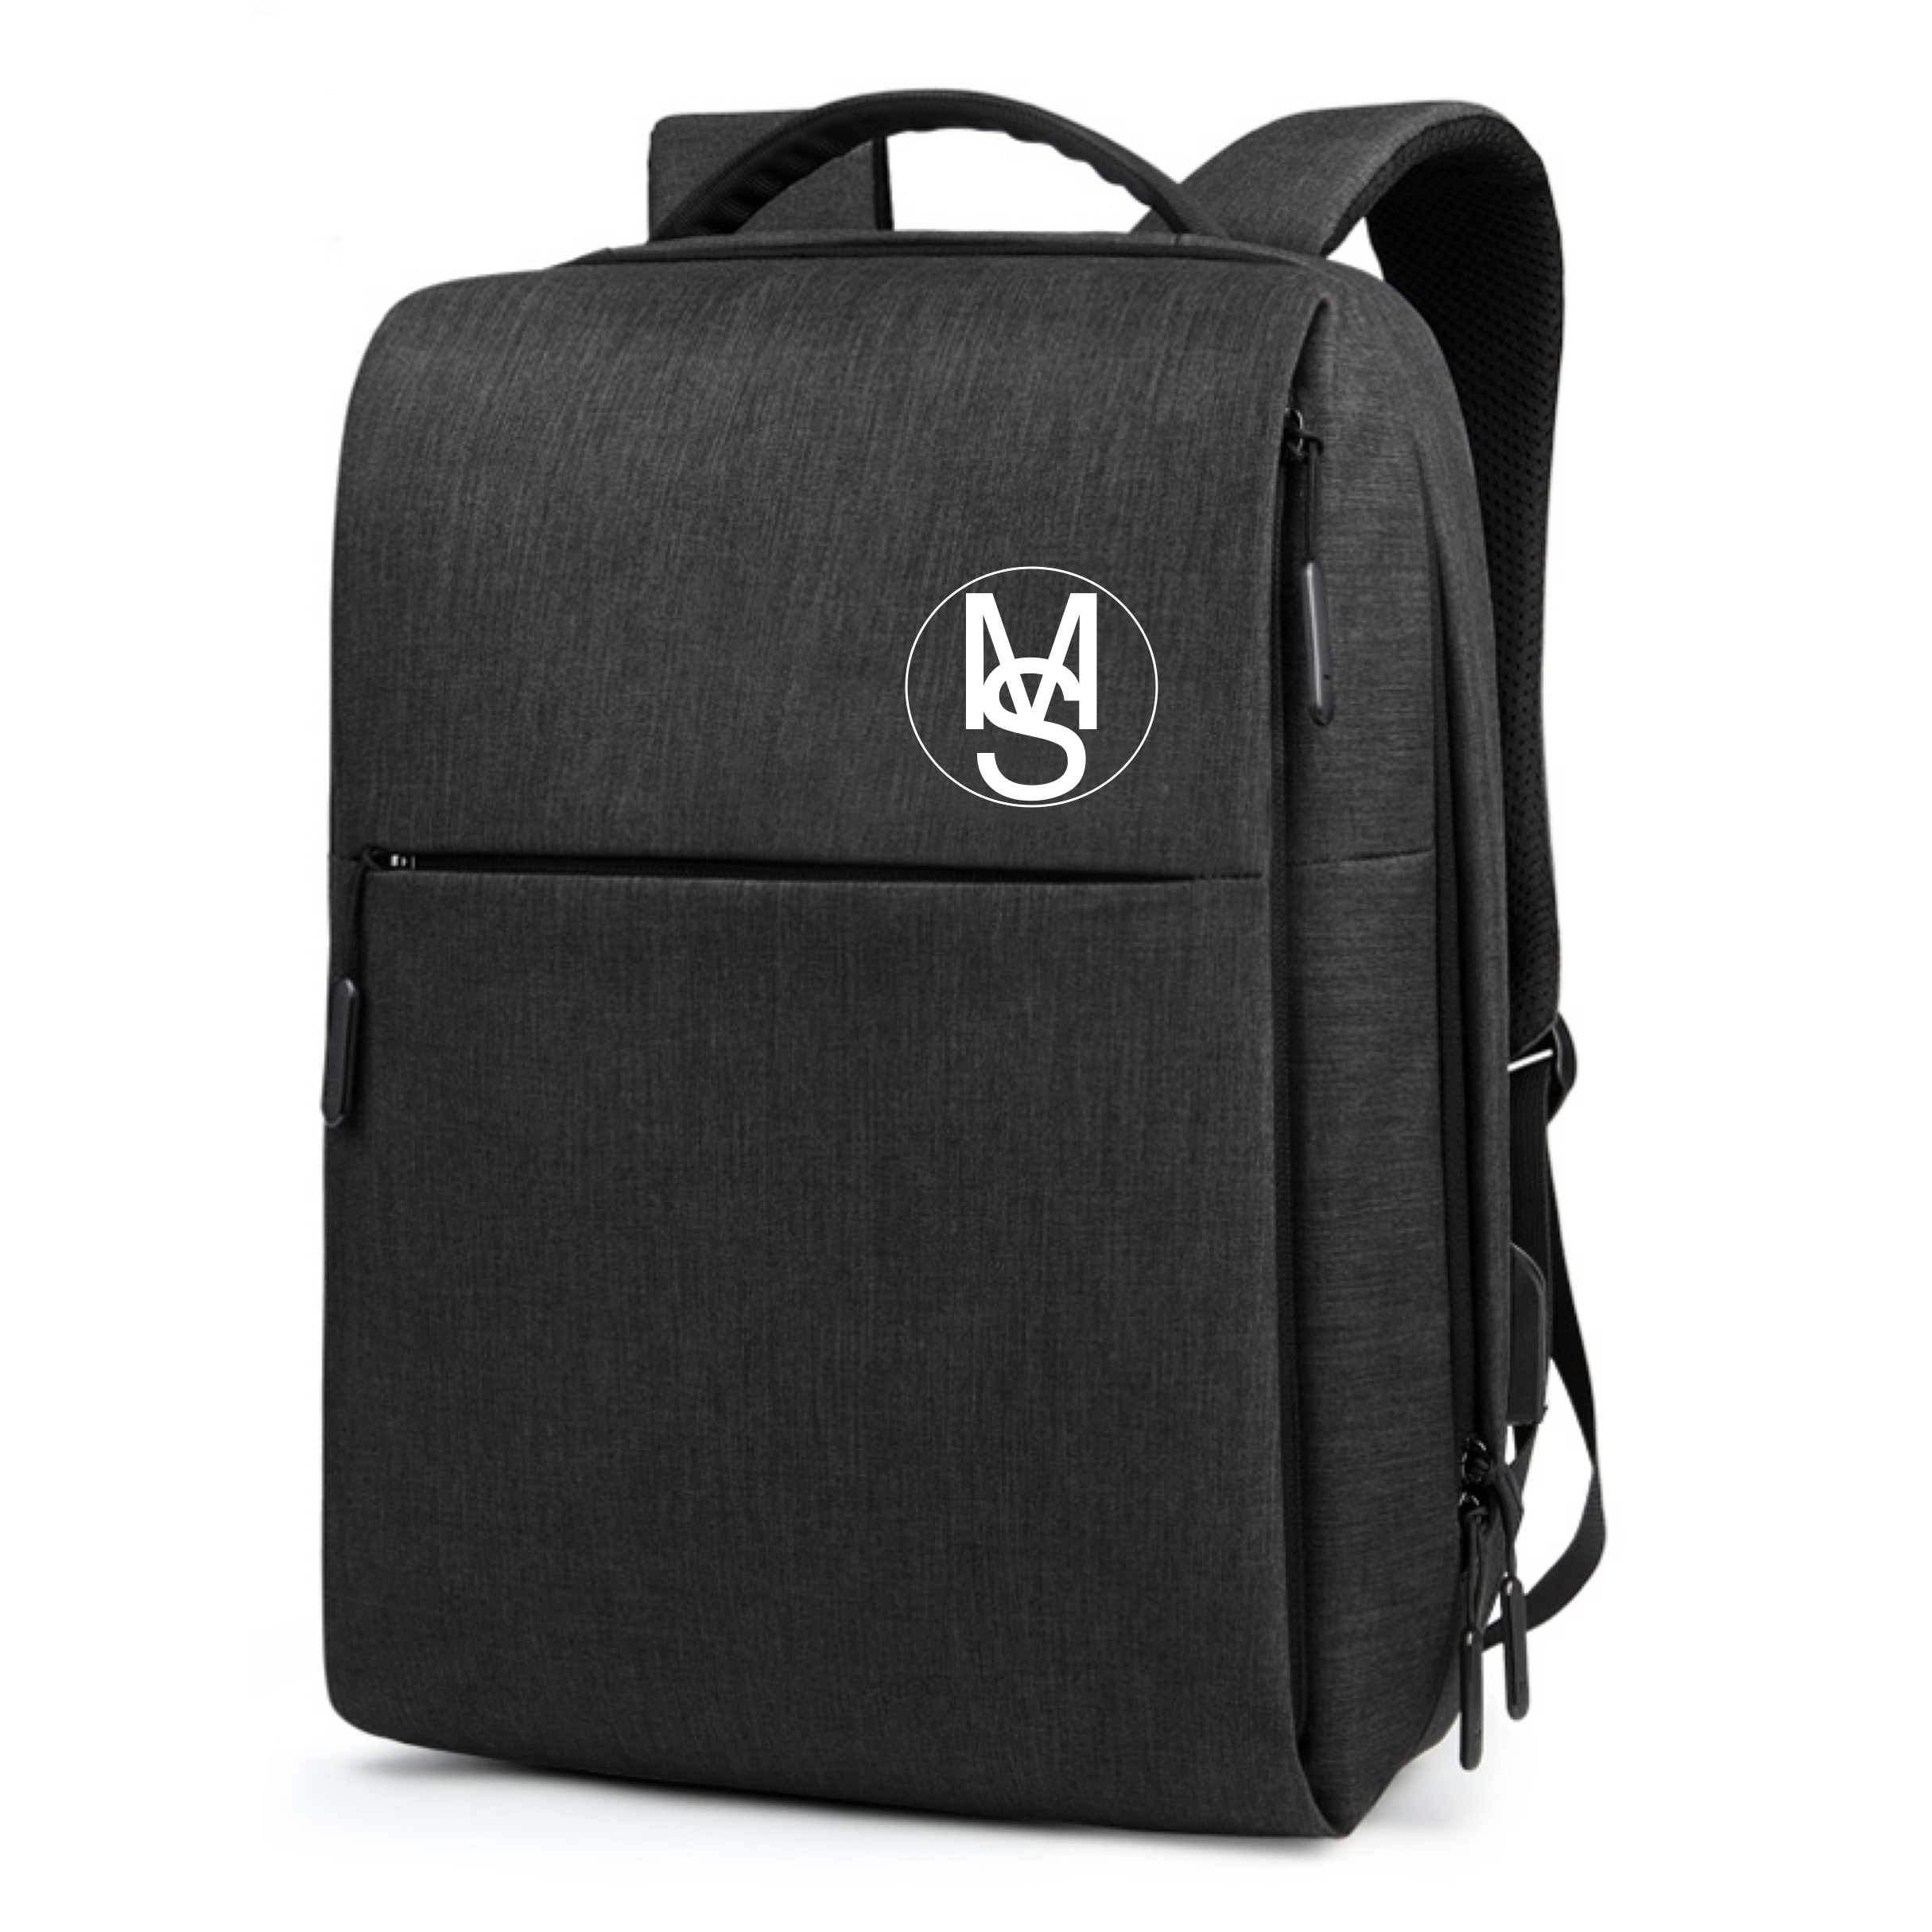 Multifunctional Anti-Theft Backpack - Dark Grey Image